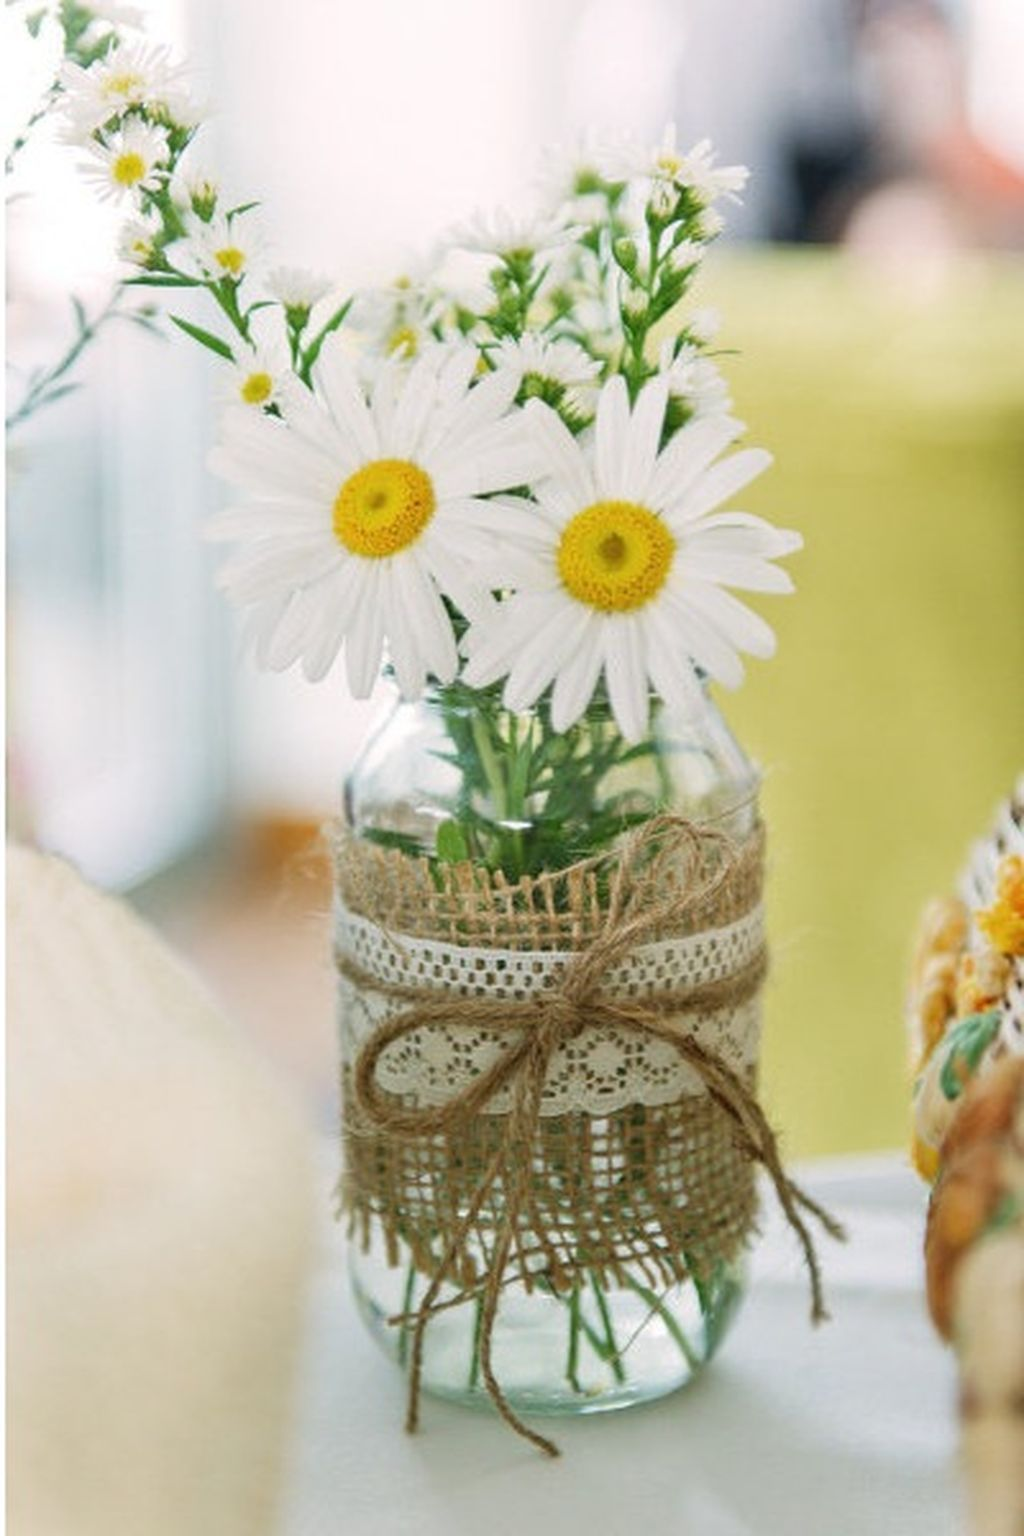 Mason jar wedding decoration ideas   Simple Spring Wedding Centerpieces Ideas You Will Love